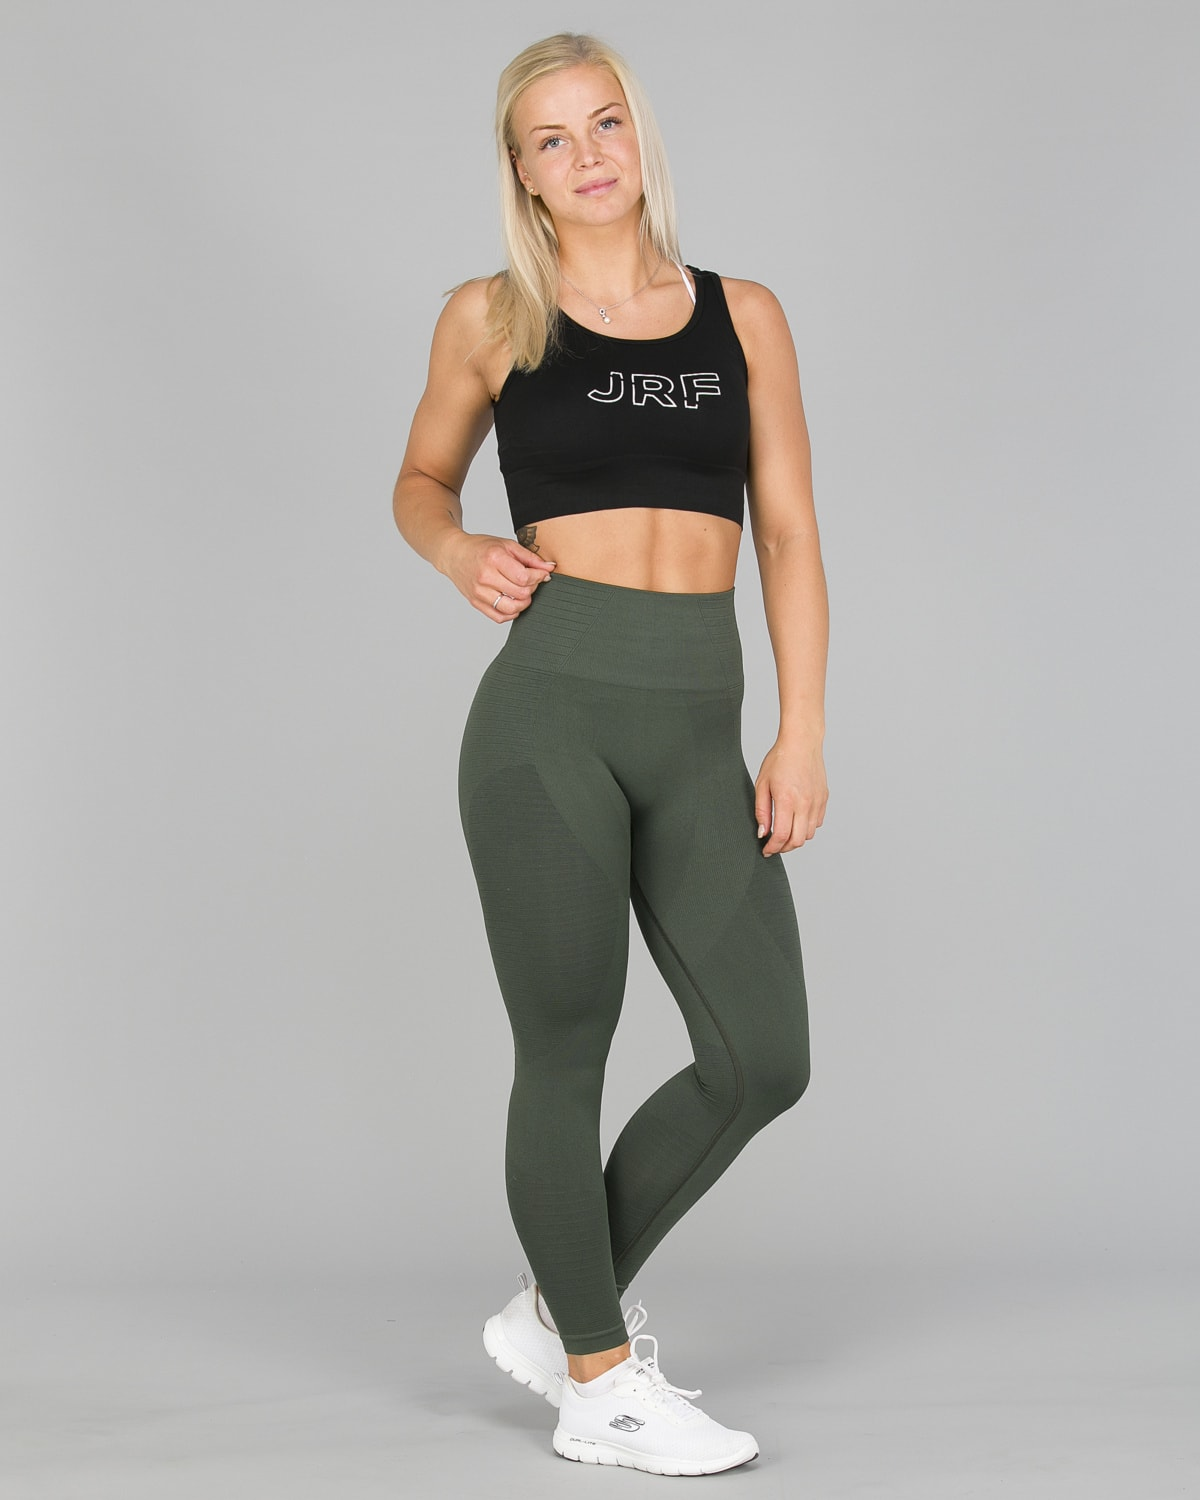 Jerf Gela 2.0 tights dark green5